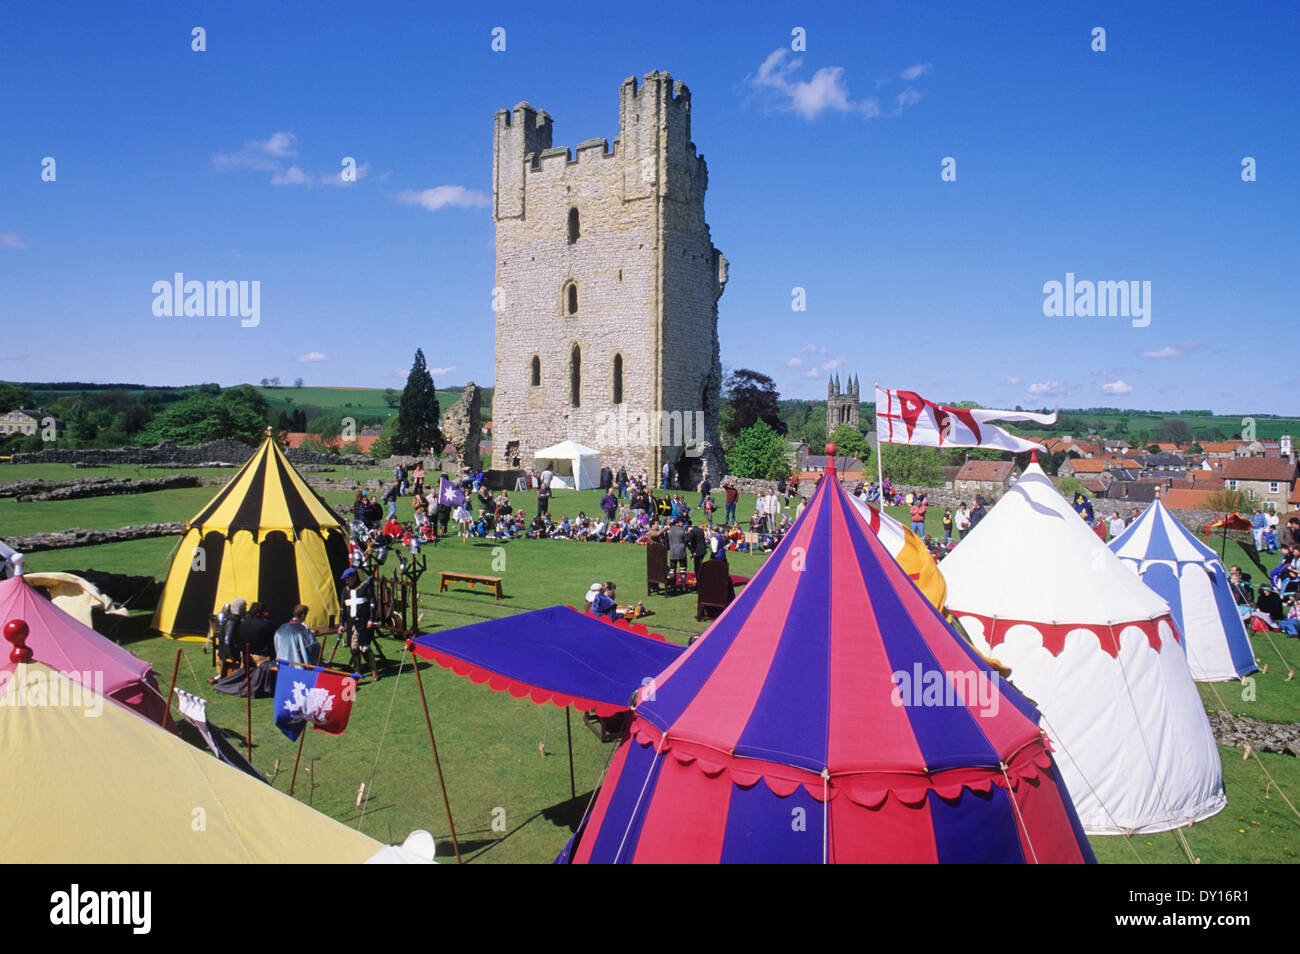 Helmsley Castle, medieval historical re-enactment, encampment Yorkshire England UK - Stock Image